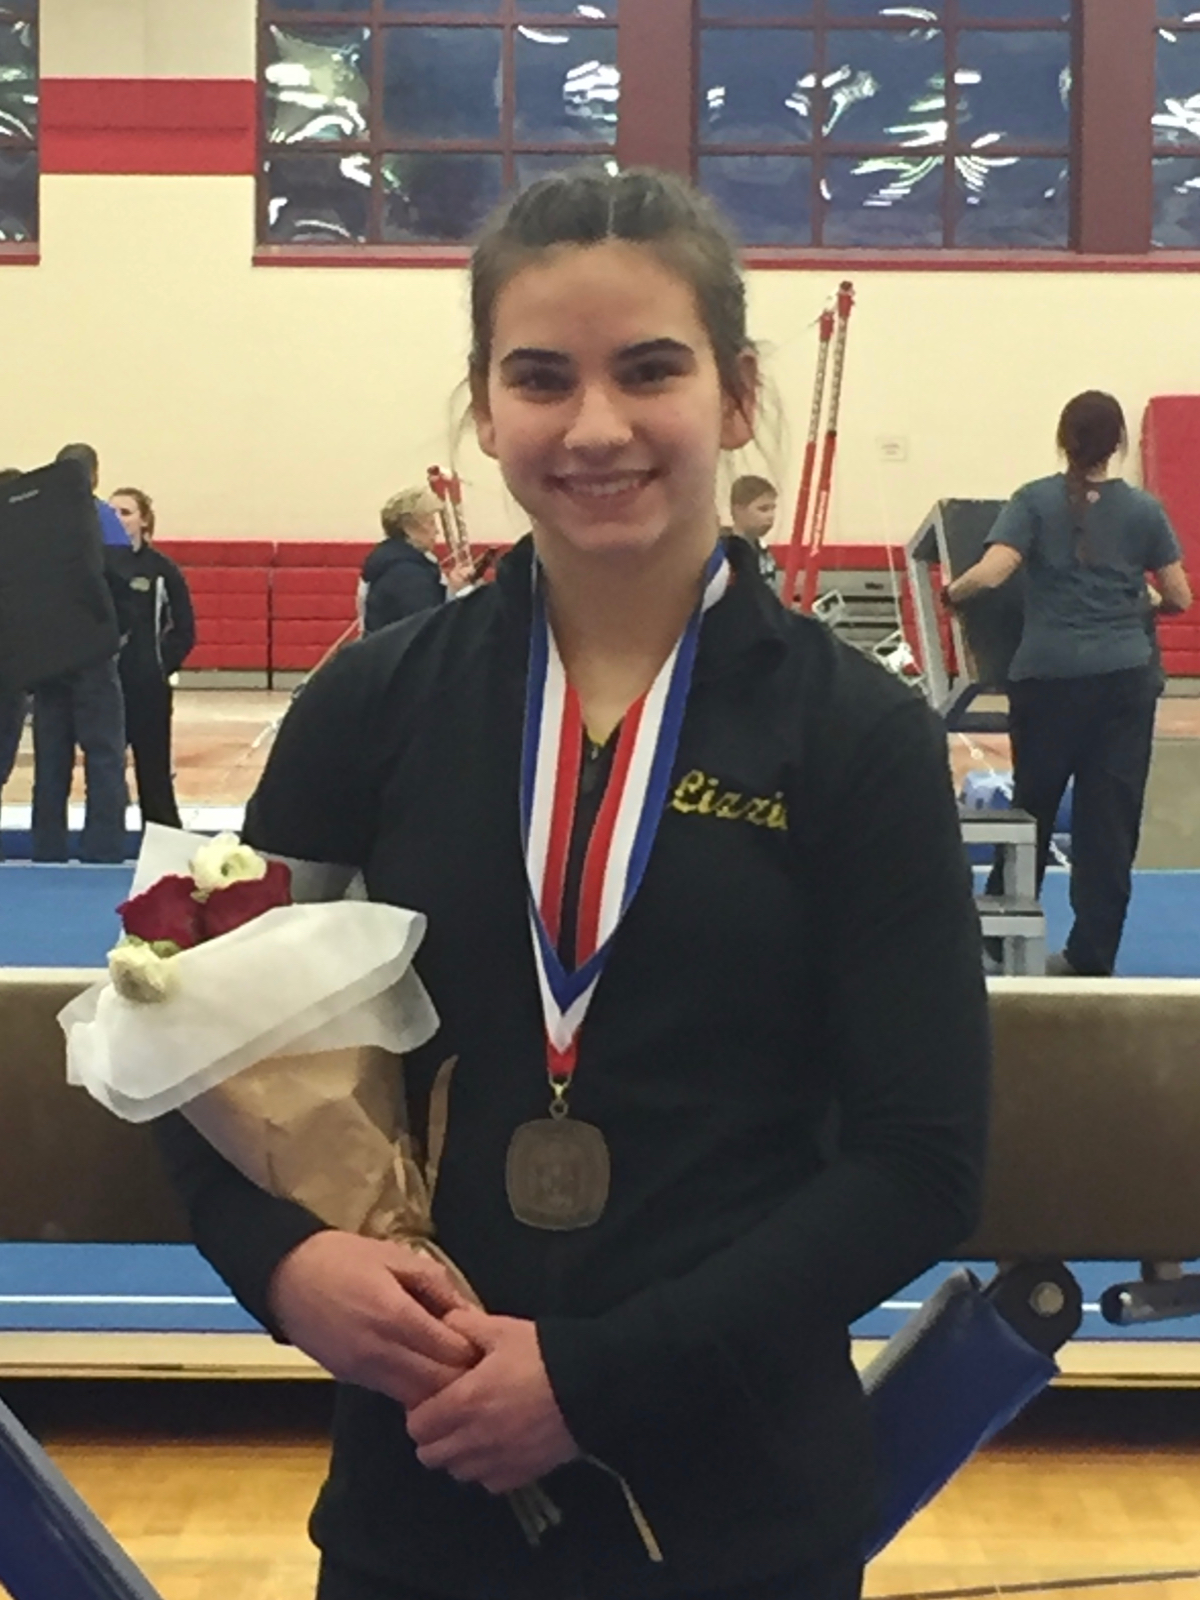 Lizzie Orosz Places 3rd on the Beam at the WPIAL Gymnastic Championships